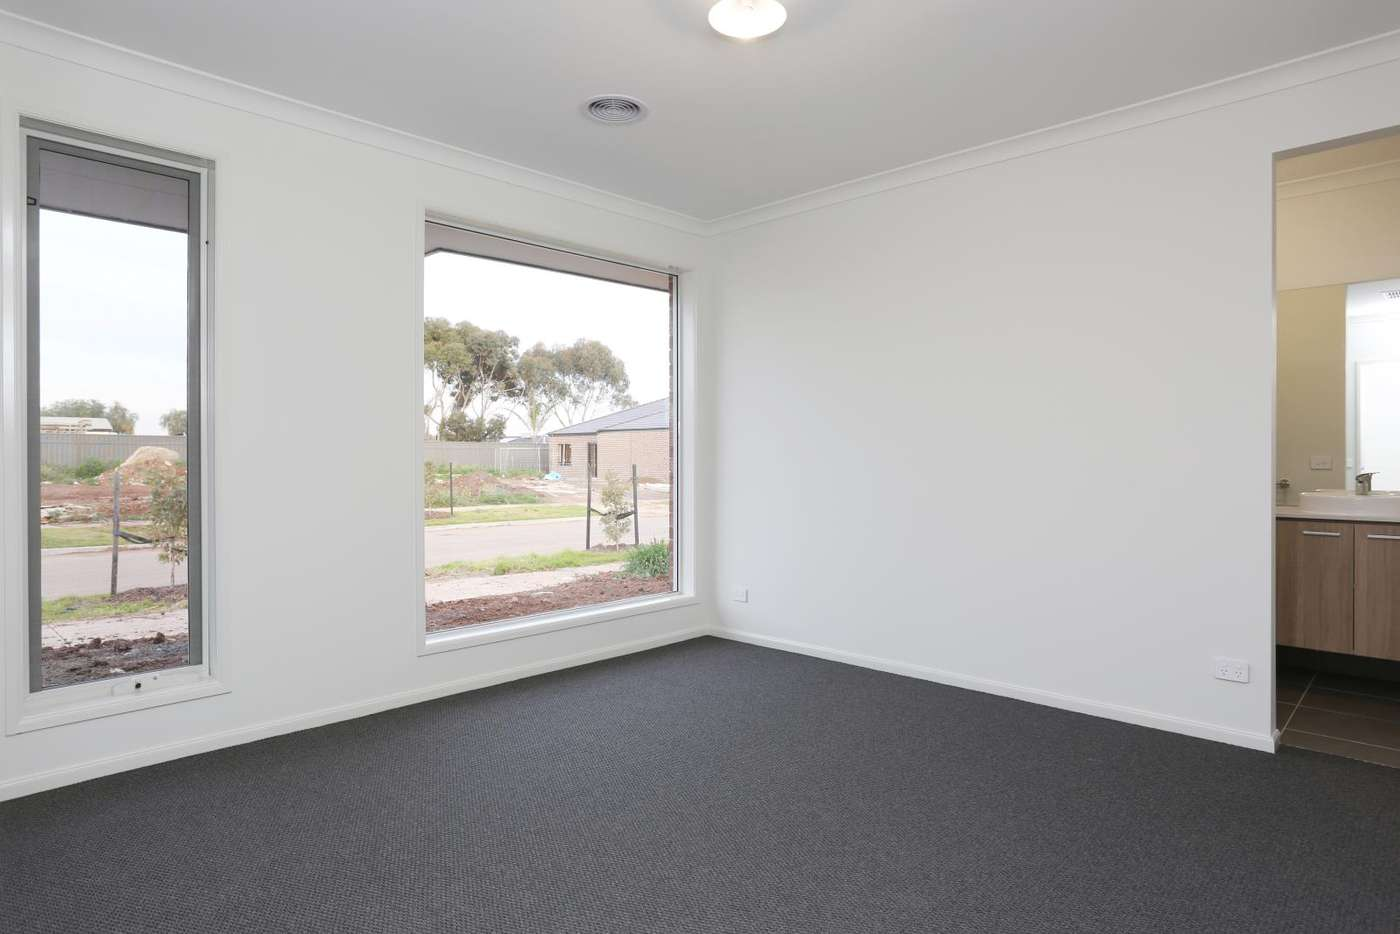 Sixth view of Homely house listing, 12 Heaton Street, Tarneit VIC 3029